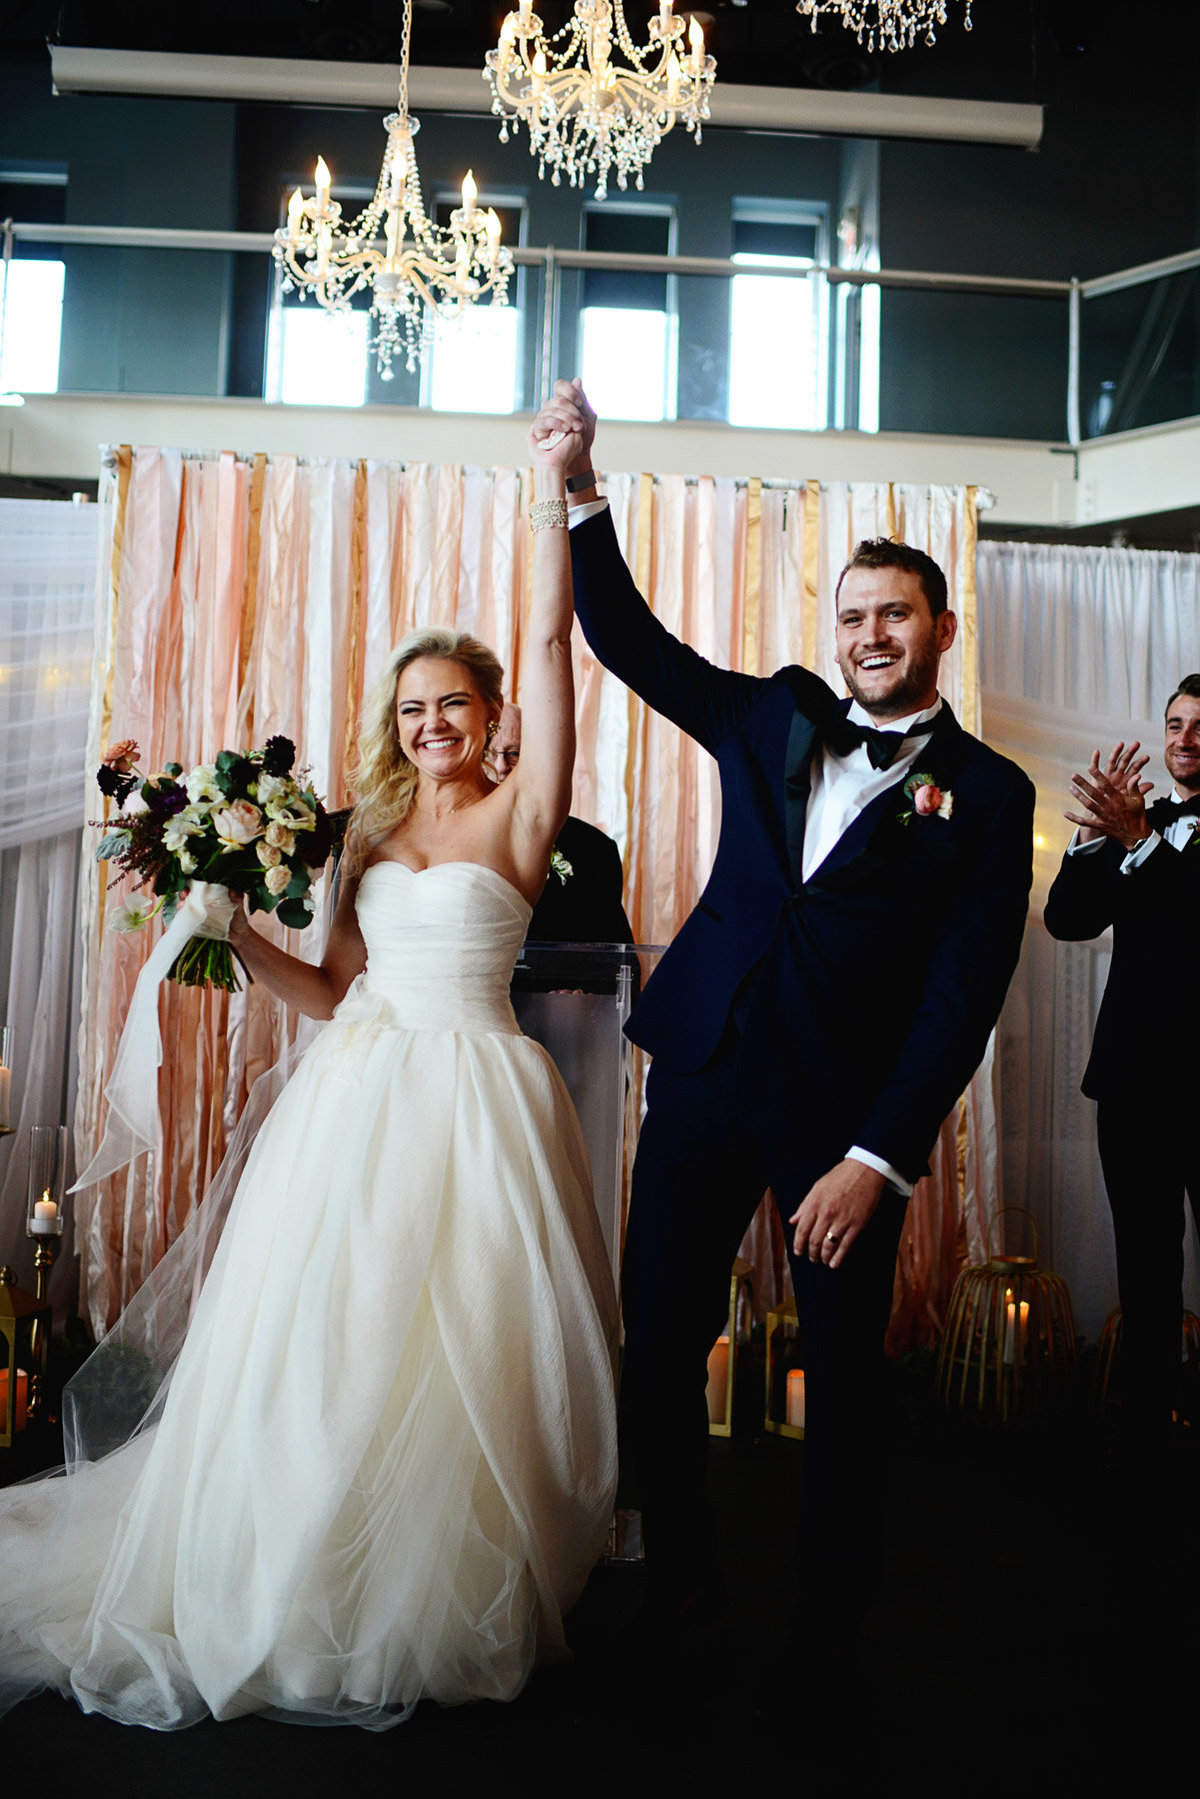 muse event center wedding photos minneapolis wedding photographer bryan newfield photography 43